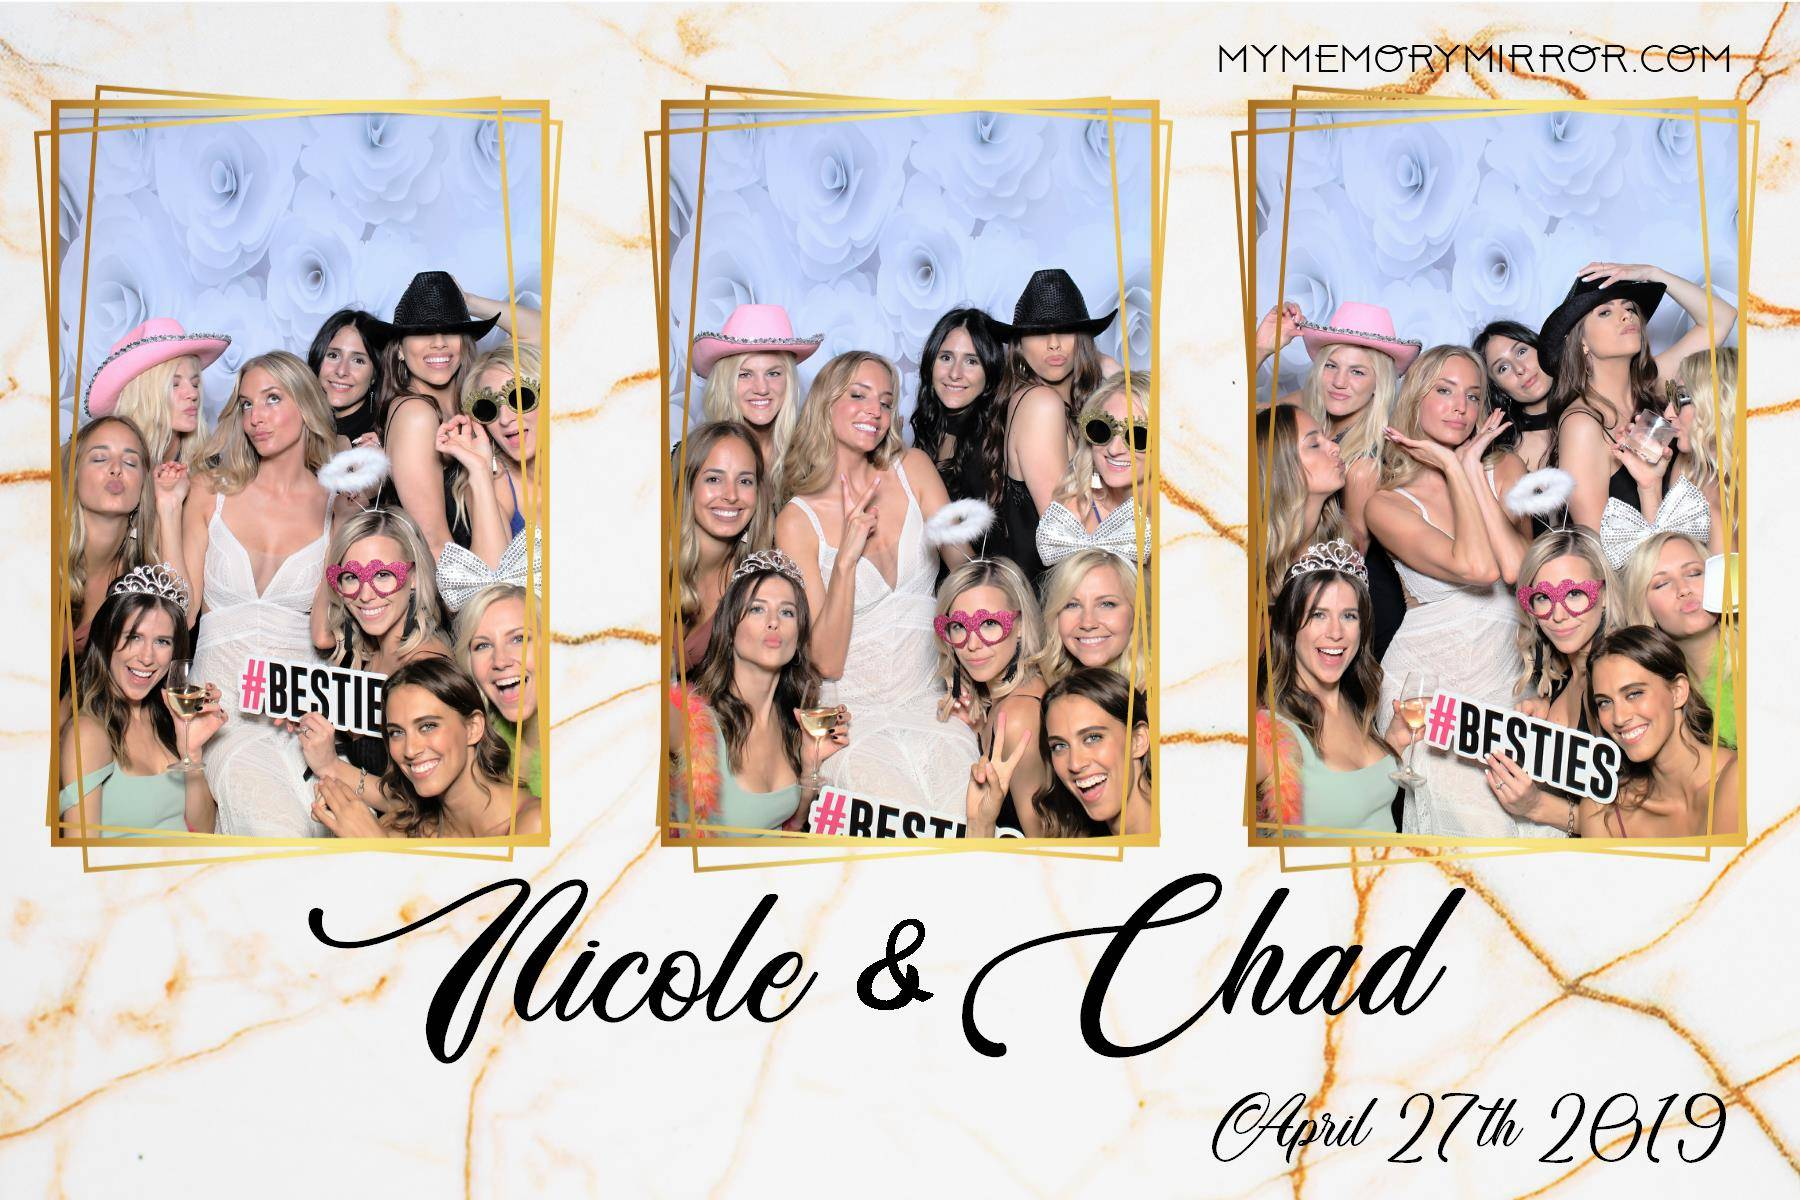 Wedding Mirror photo booth